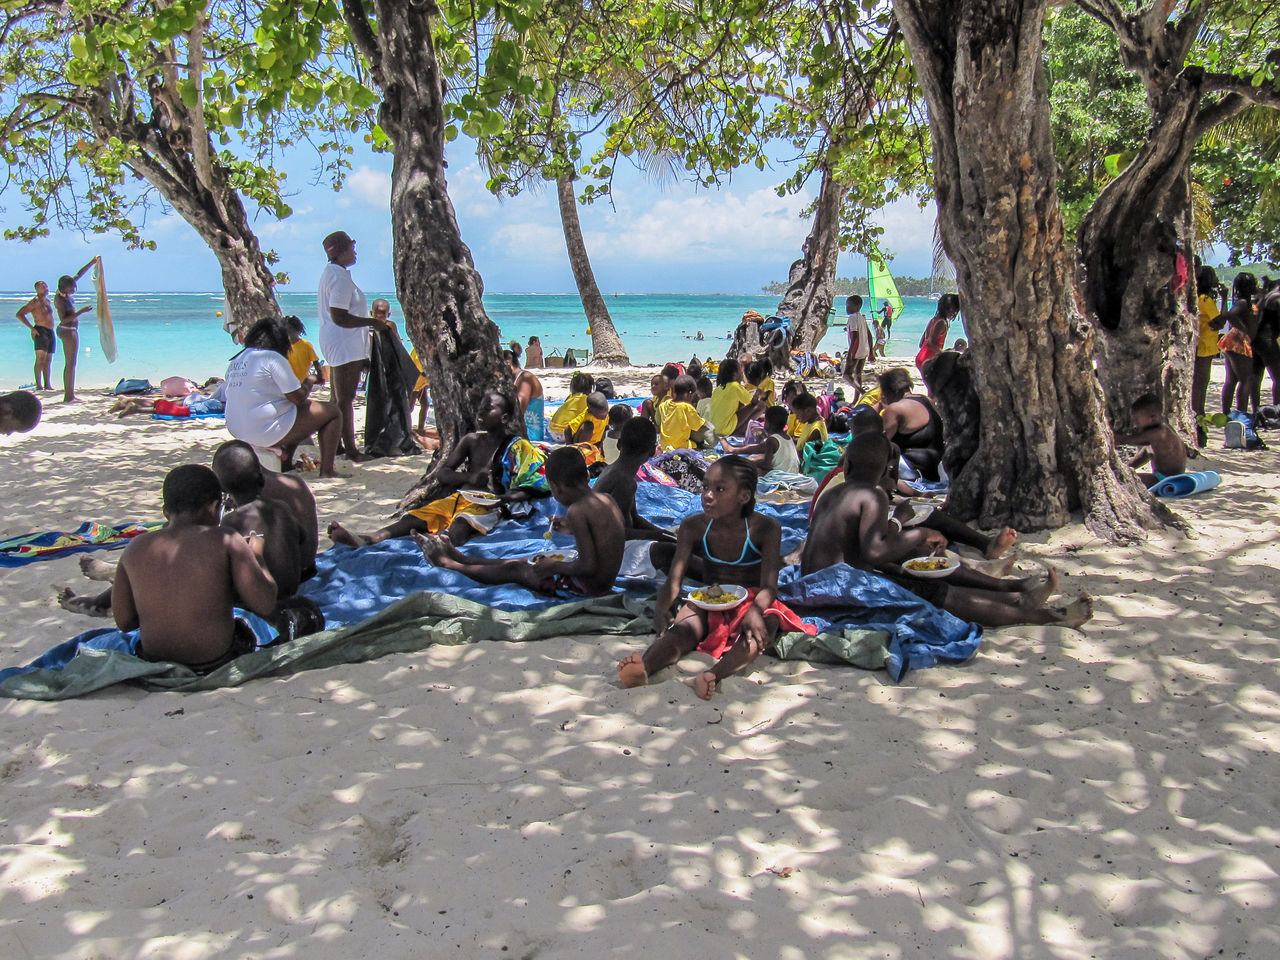 beach, sand, large group of people, tree, vacations, sea, real people, relaxation, leisure activity, lying down, men, day, outdoors, sitting, nature, water, women, sky, people, adult, adults only